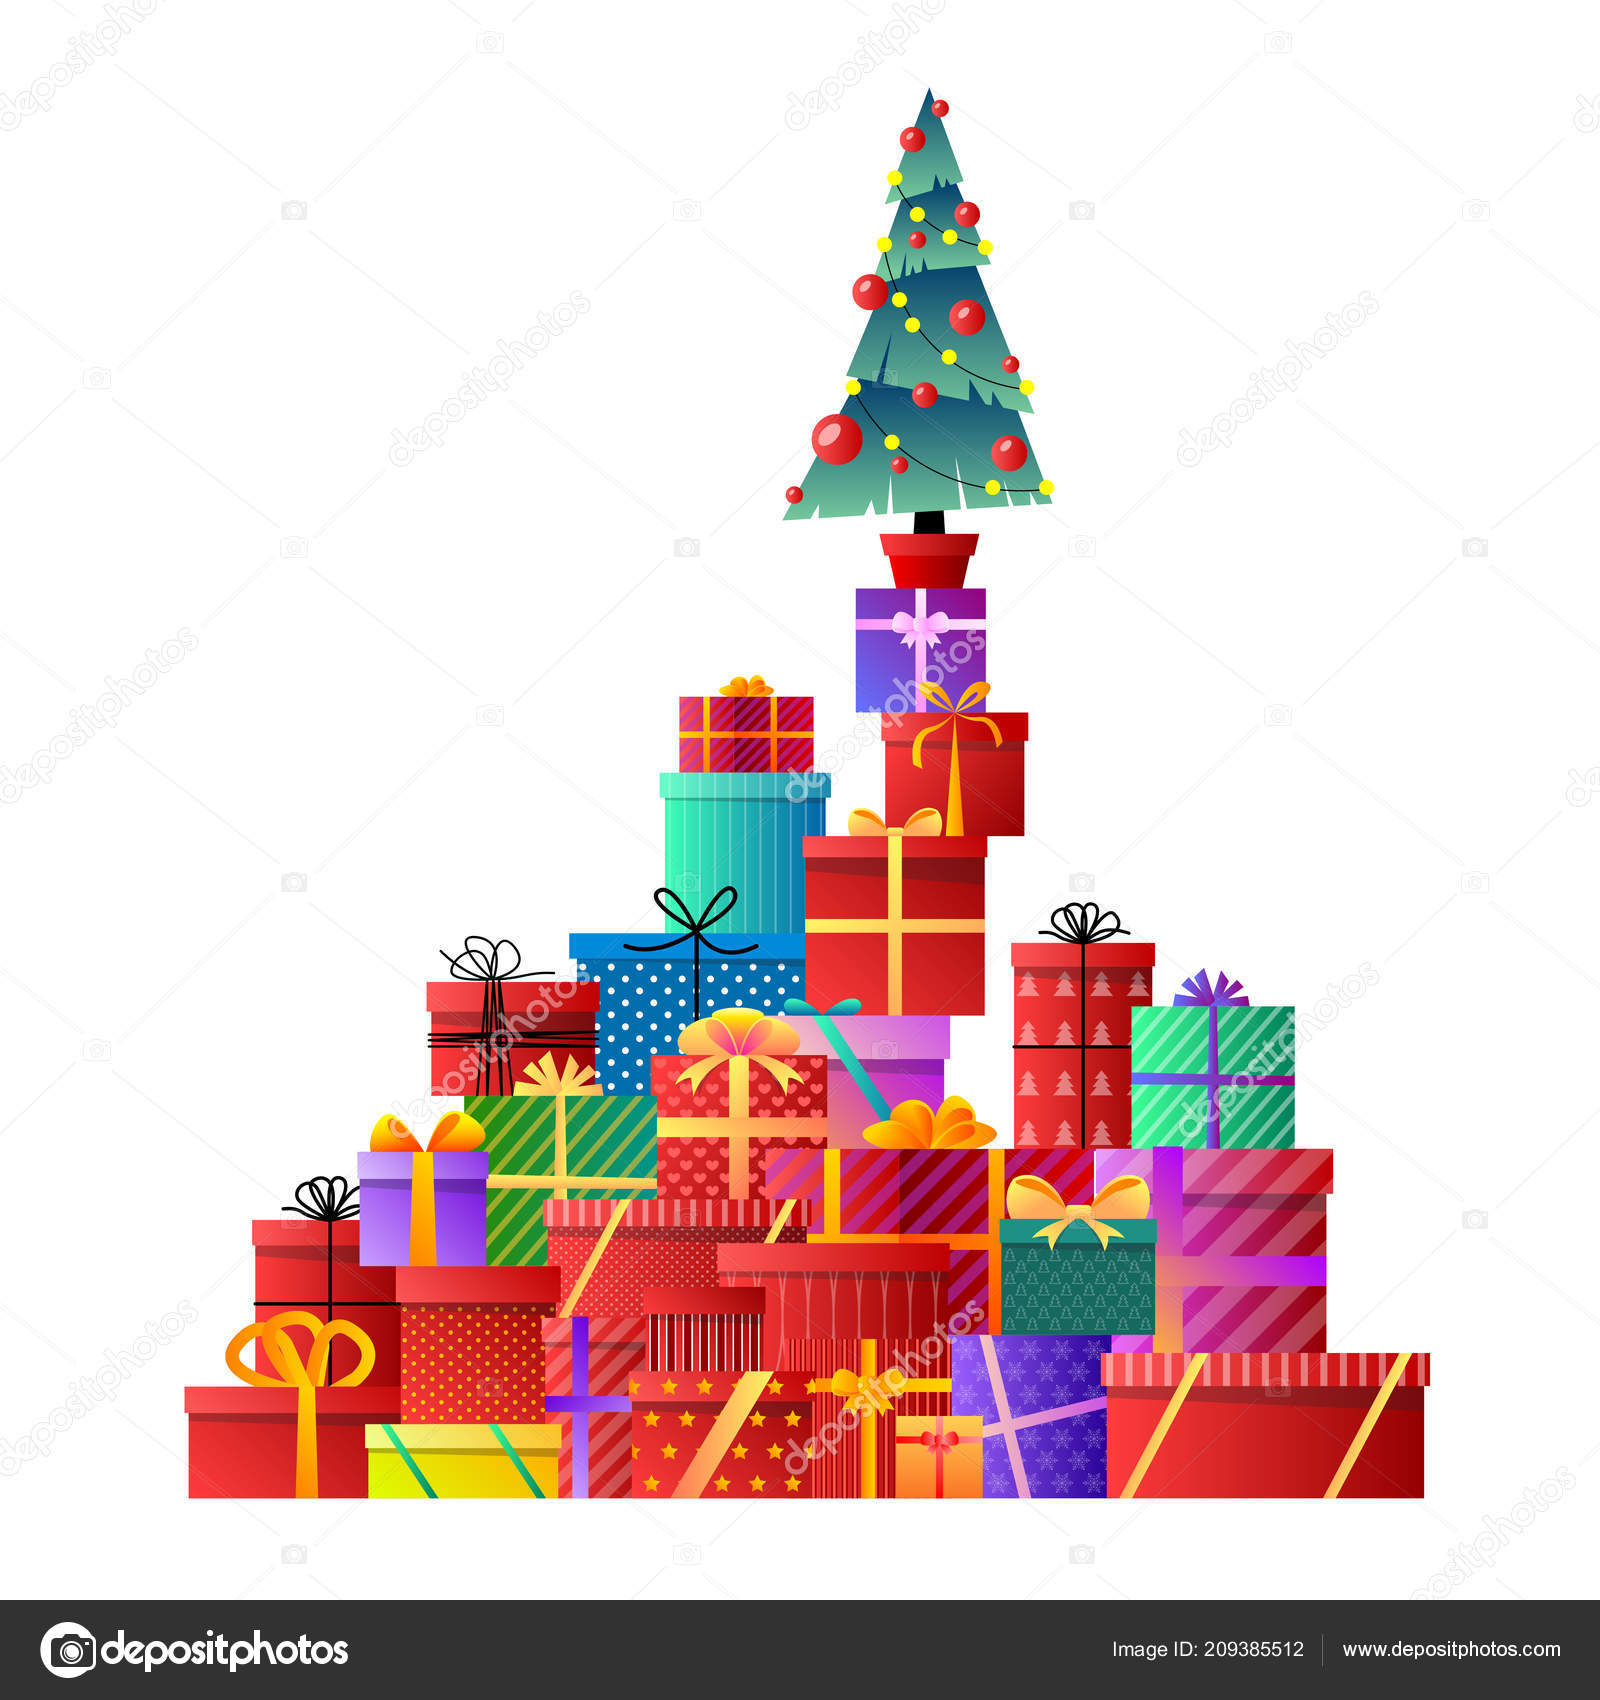 merry christmas christmas tree gifts xmas celebration decorated christmas tree with gift boxes balls and lamps gifts with bows and ribbons